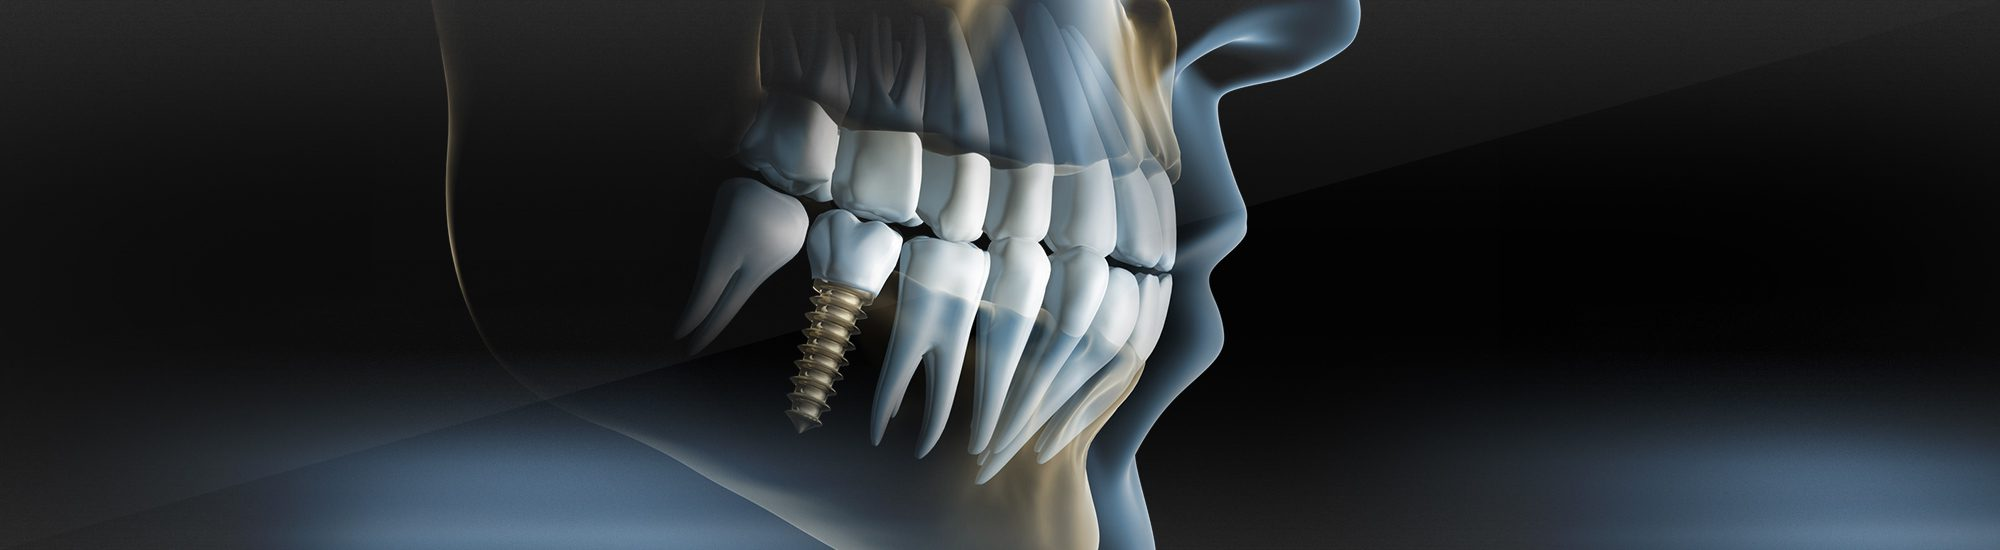 background image with teeth